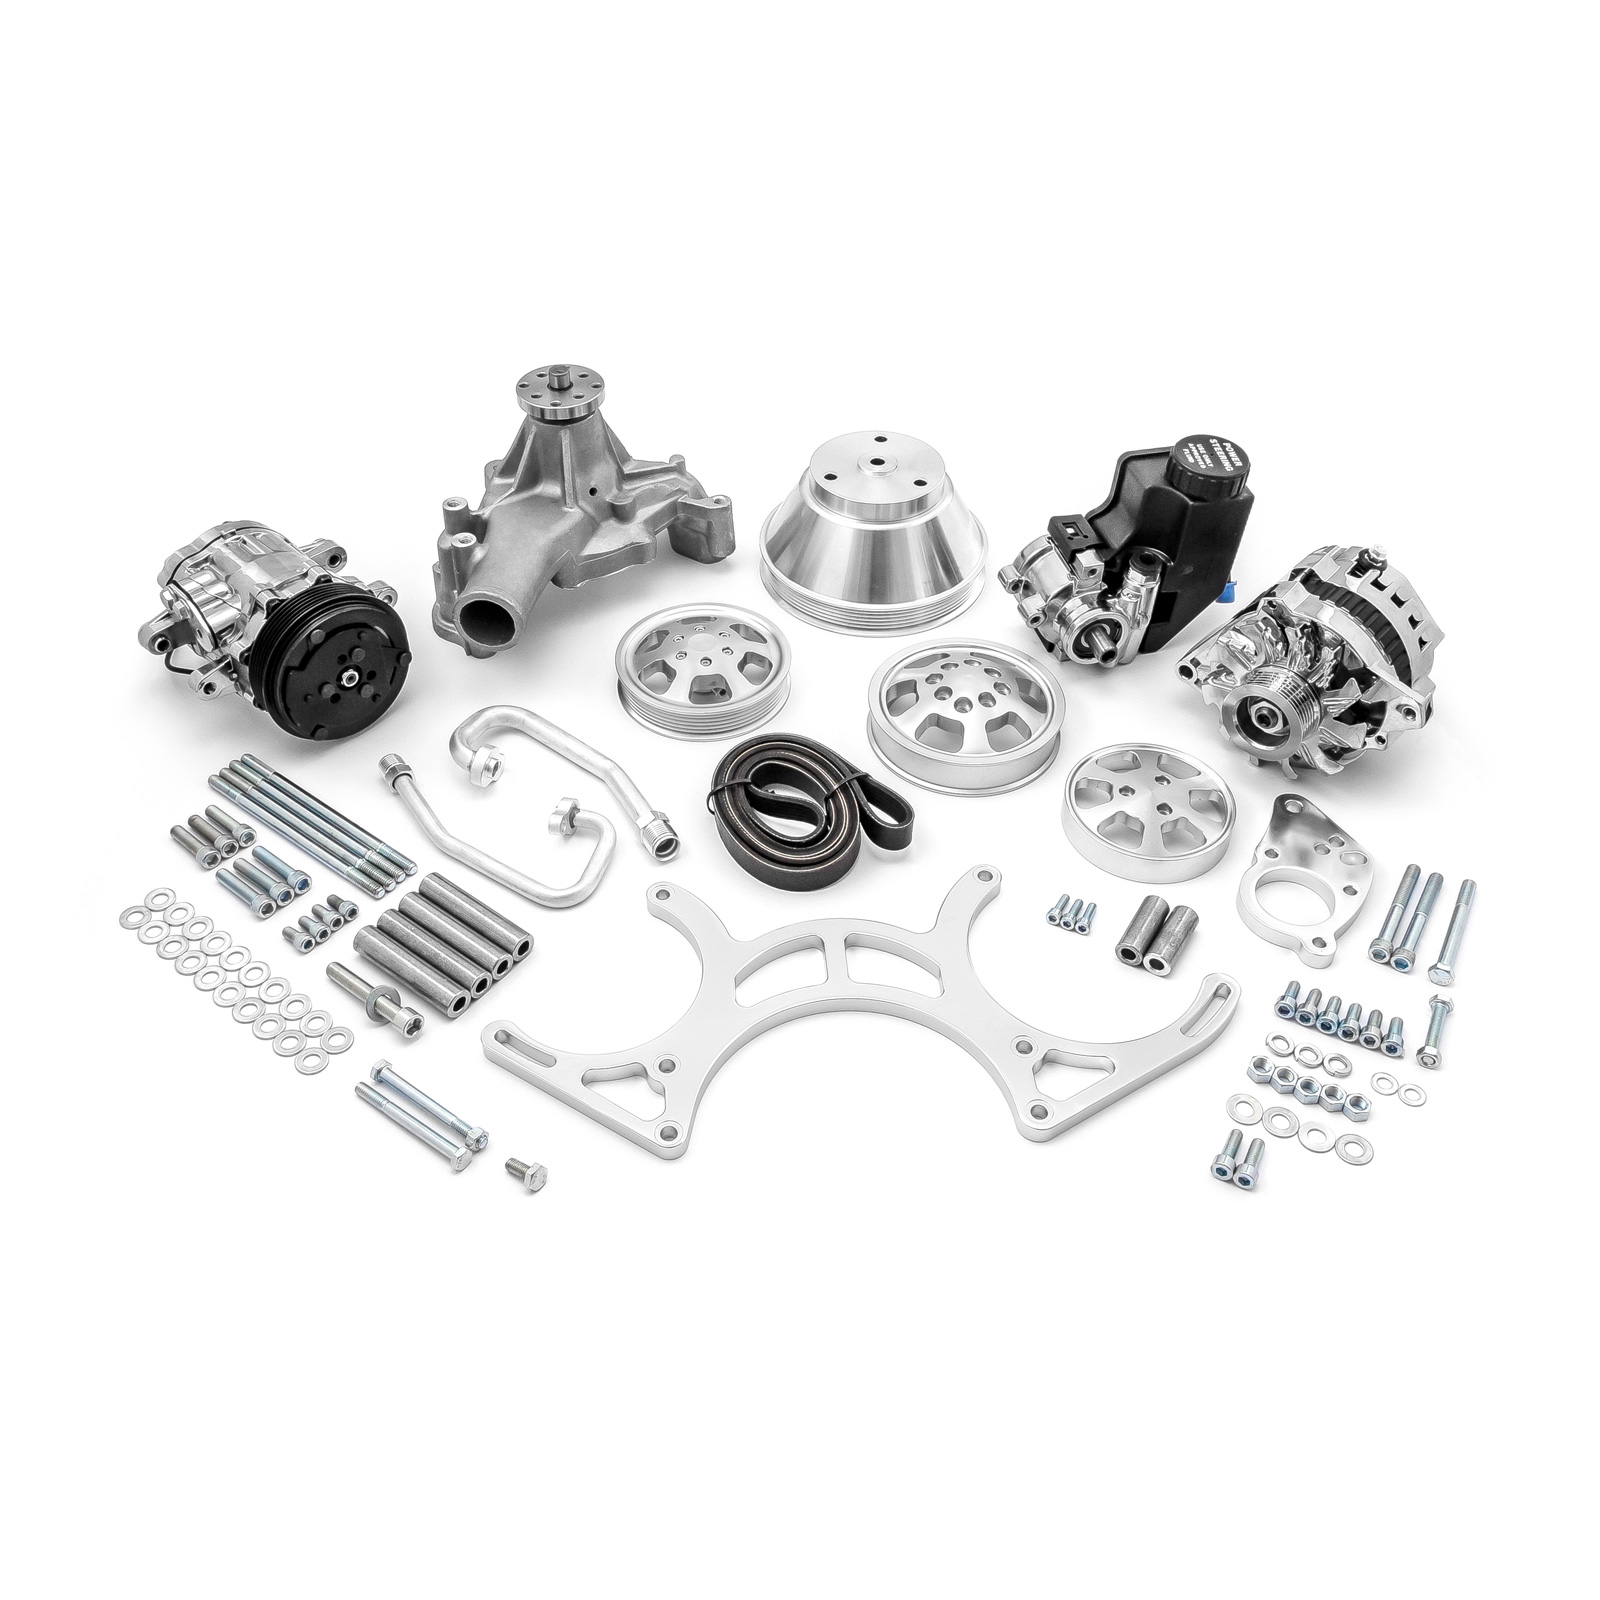 PCE® PCE415.1051 Chevy SBC 350 Aluminum Serpentine Complete Engine Pulley & Components Kit